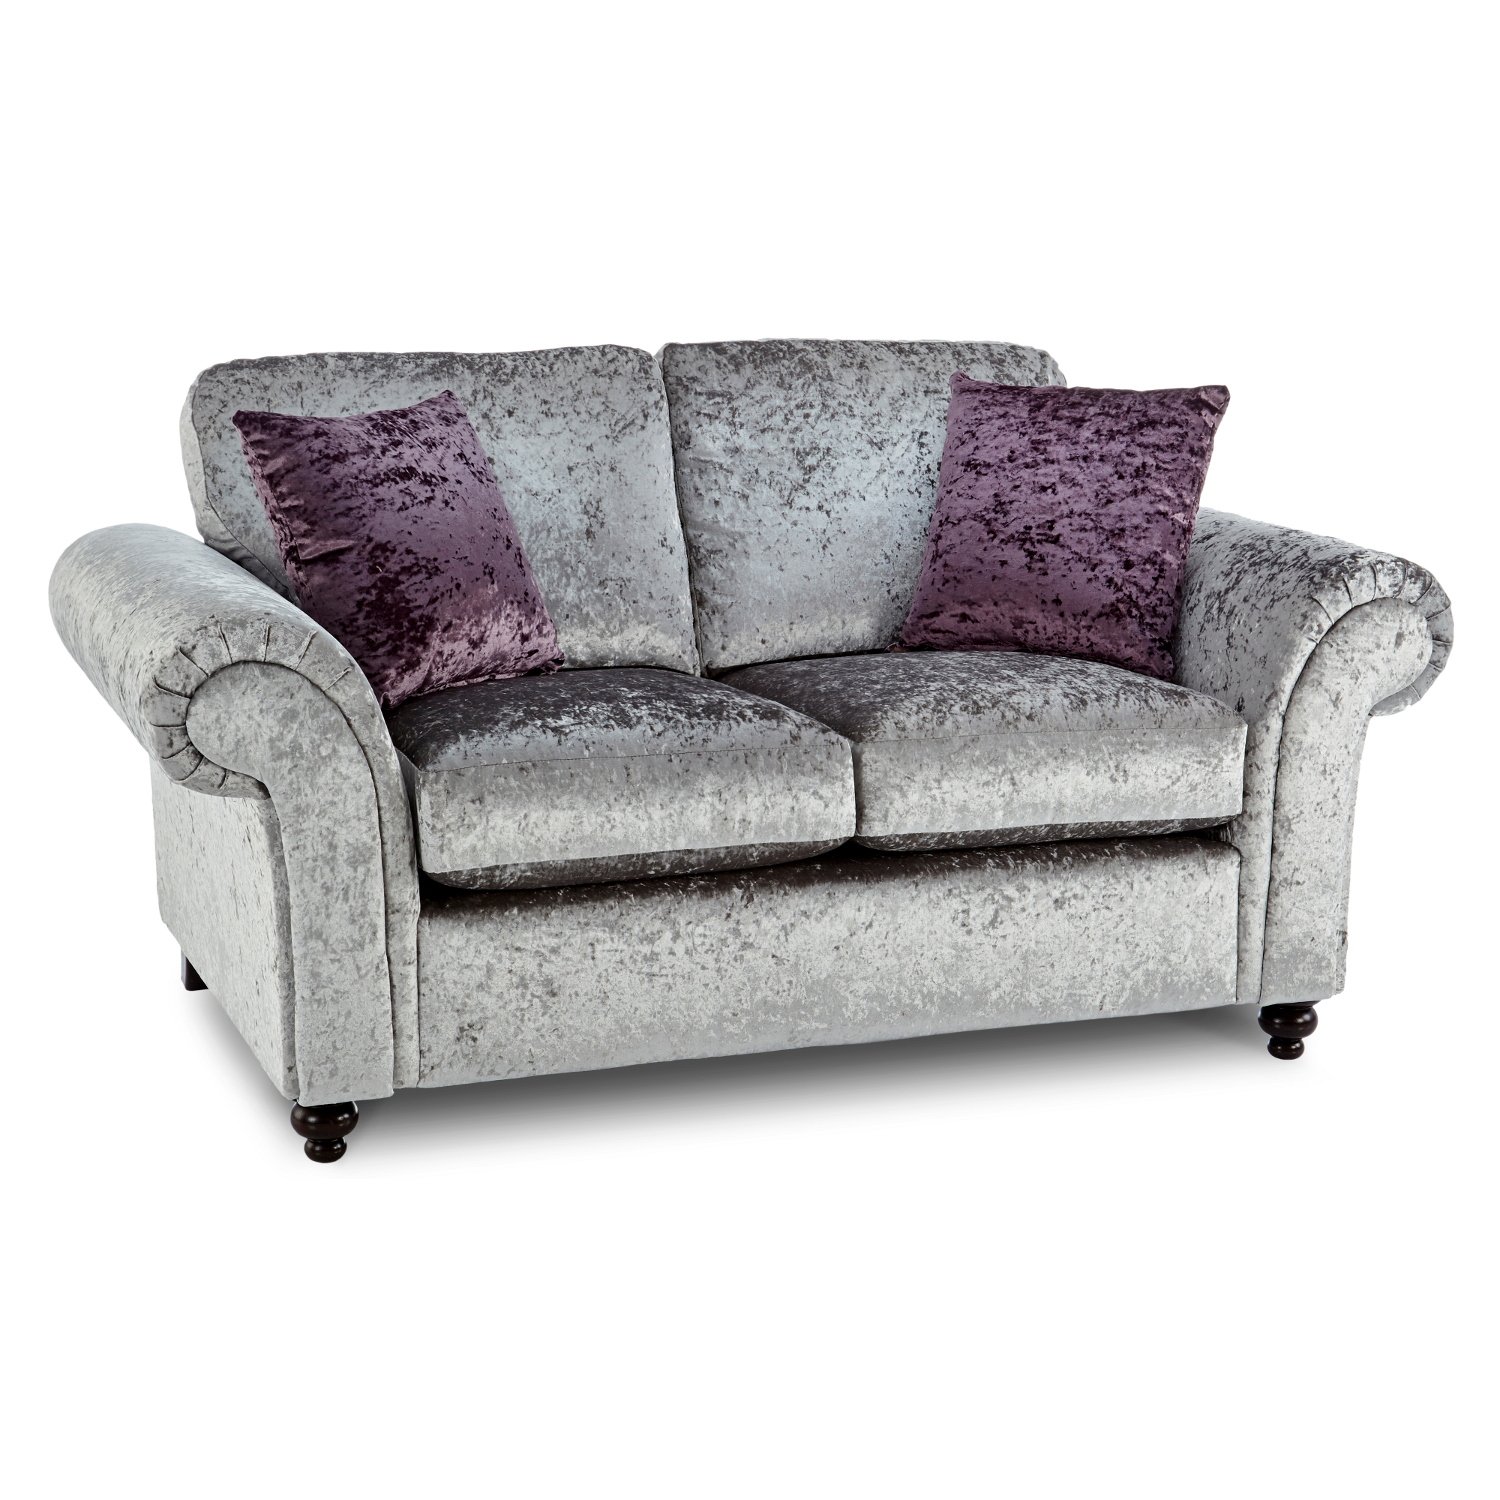 marilyn 3 2 seater crushed velvet sofa in silver just sit on it. Black Bedroom Furniture Sets. Home Design Ideas